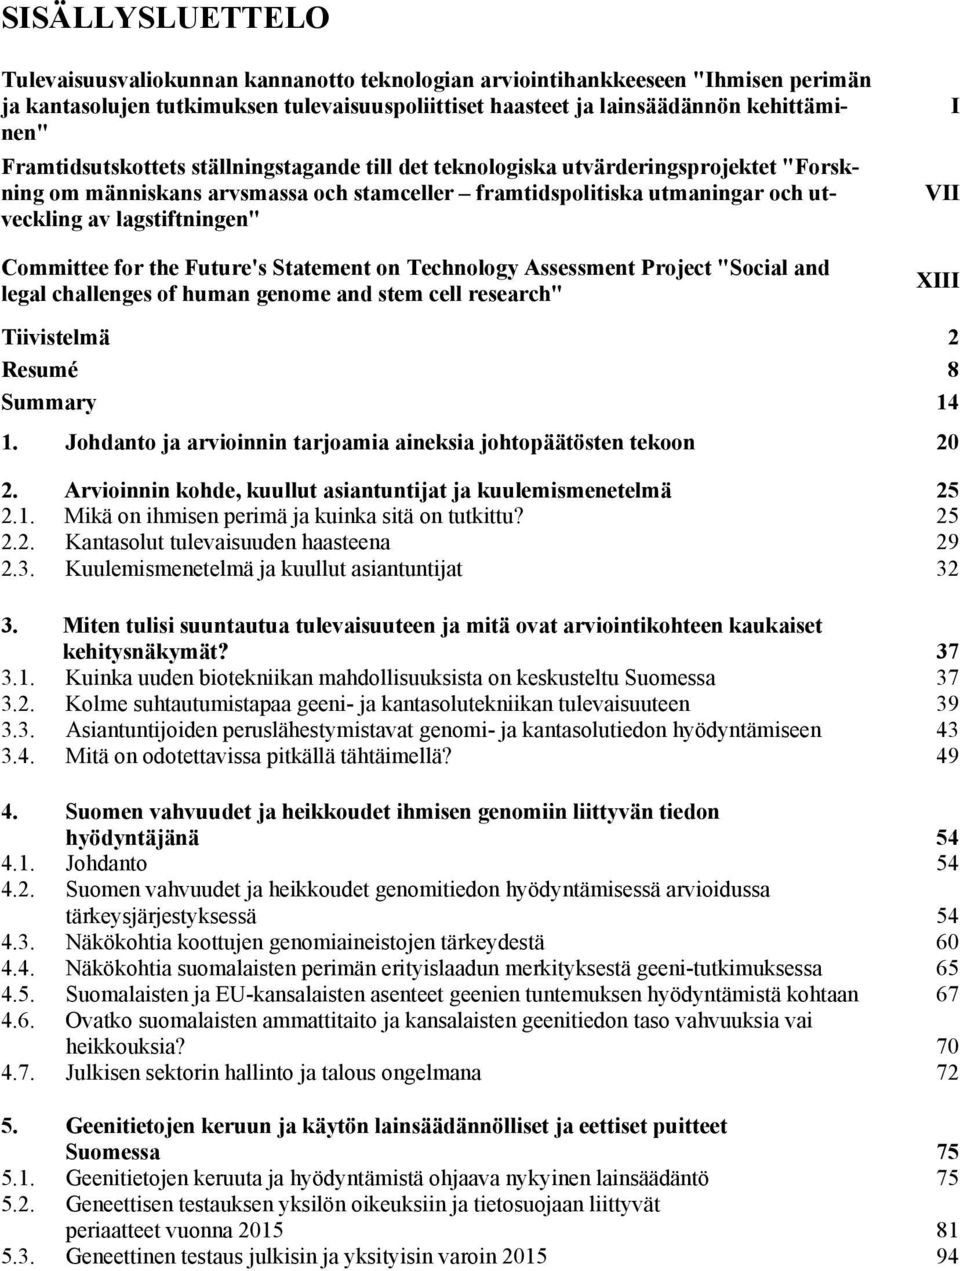 "Committee for the Future's Statement on Technology Assessment Project ""Social and legal challenges of human genome and stem cell research"" I VII XIII Tiivistelmä 2 Resumé 8 Summary 14 1."